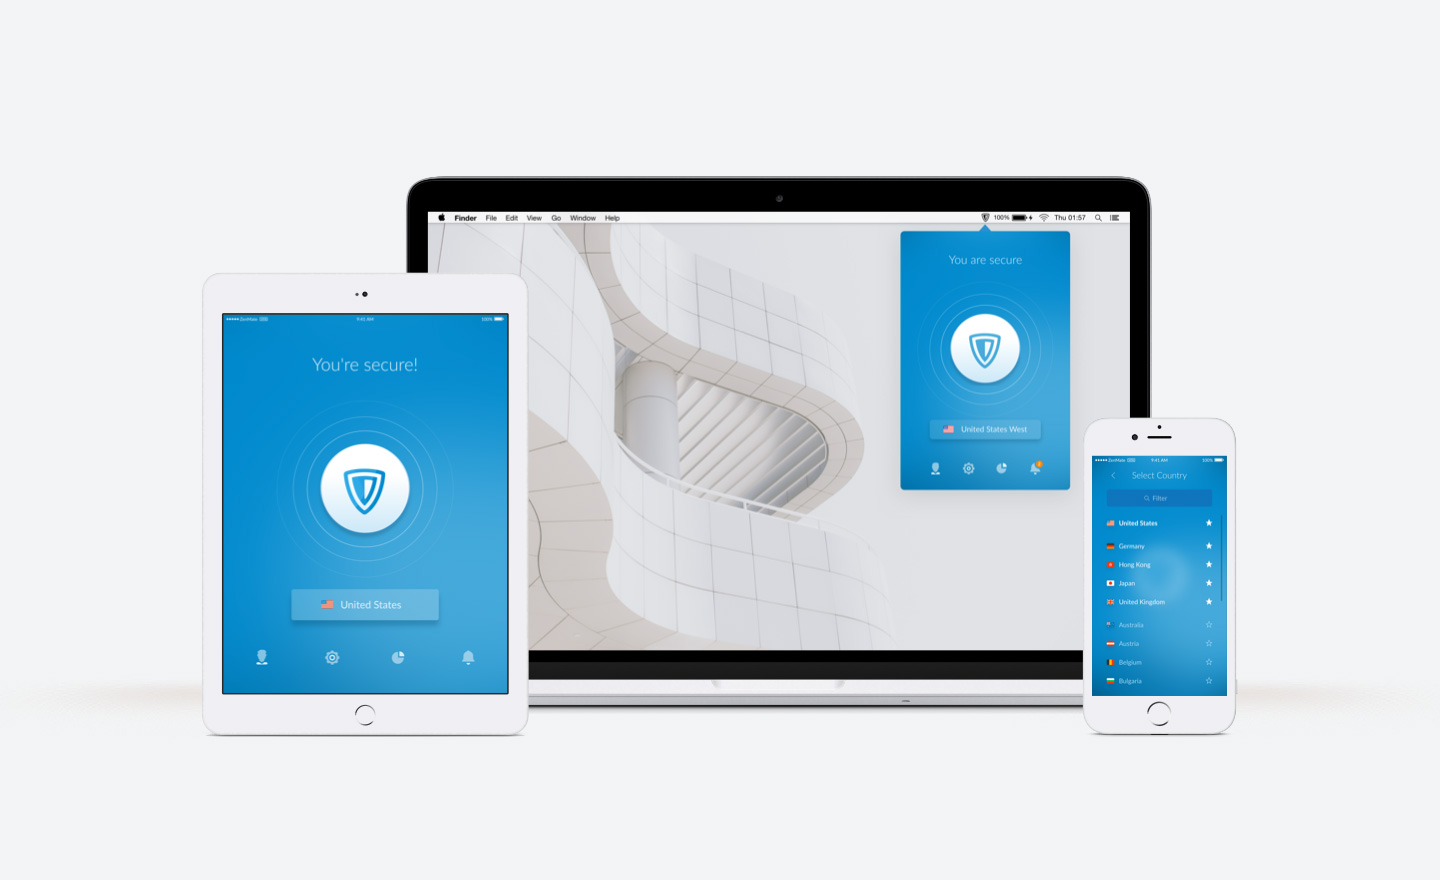 Electronic business devices with ZenMate VPN client installed